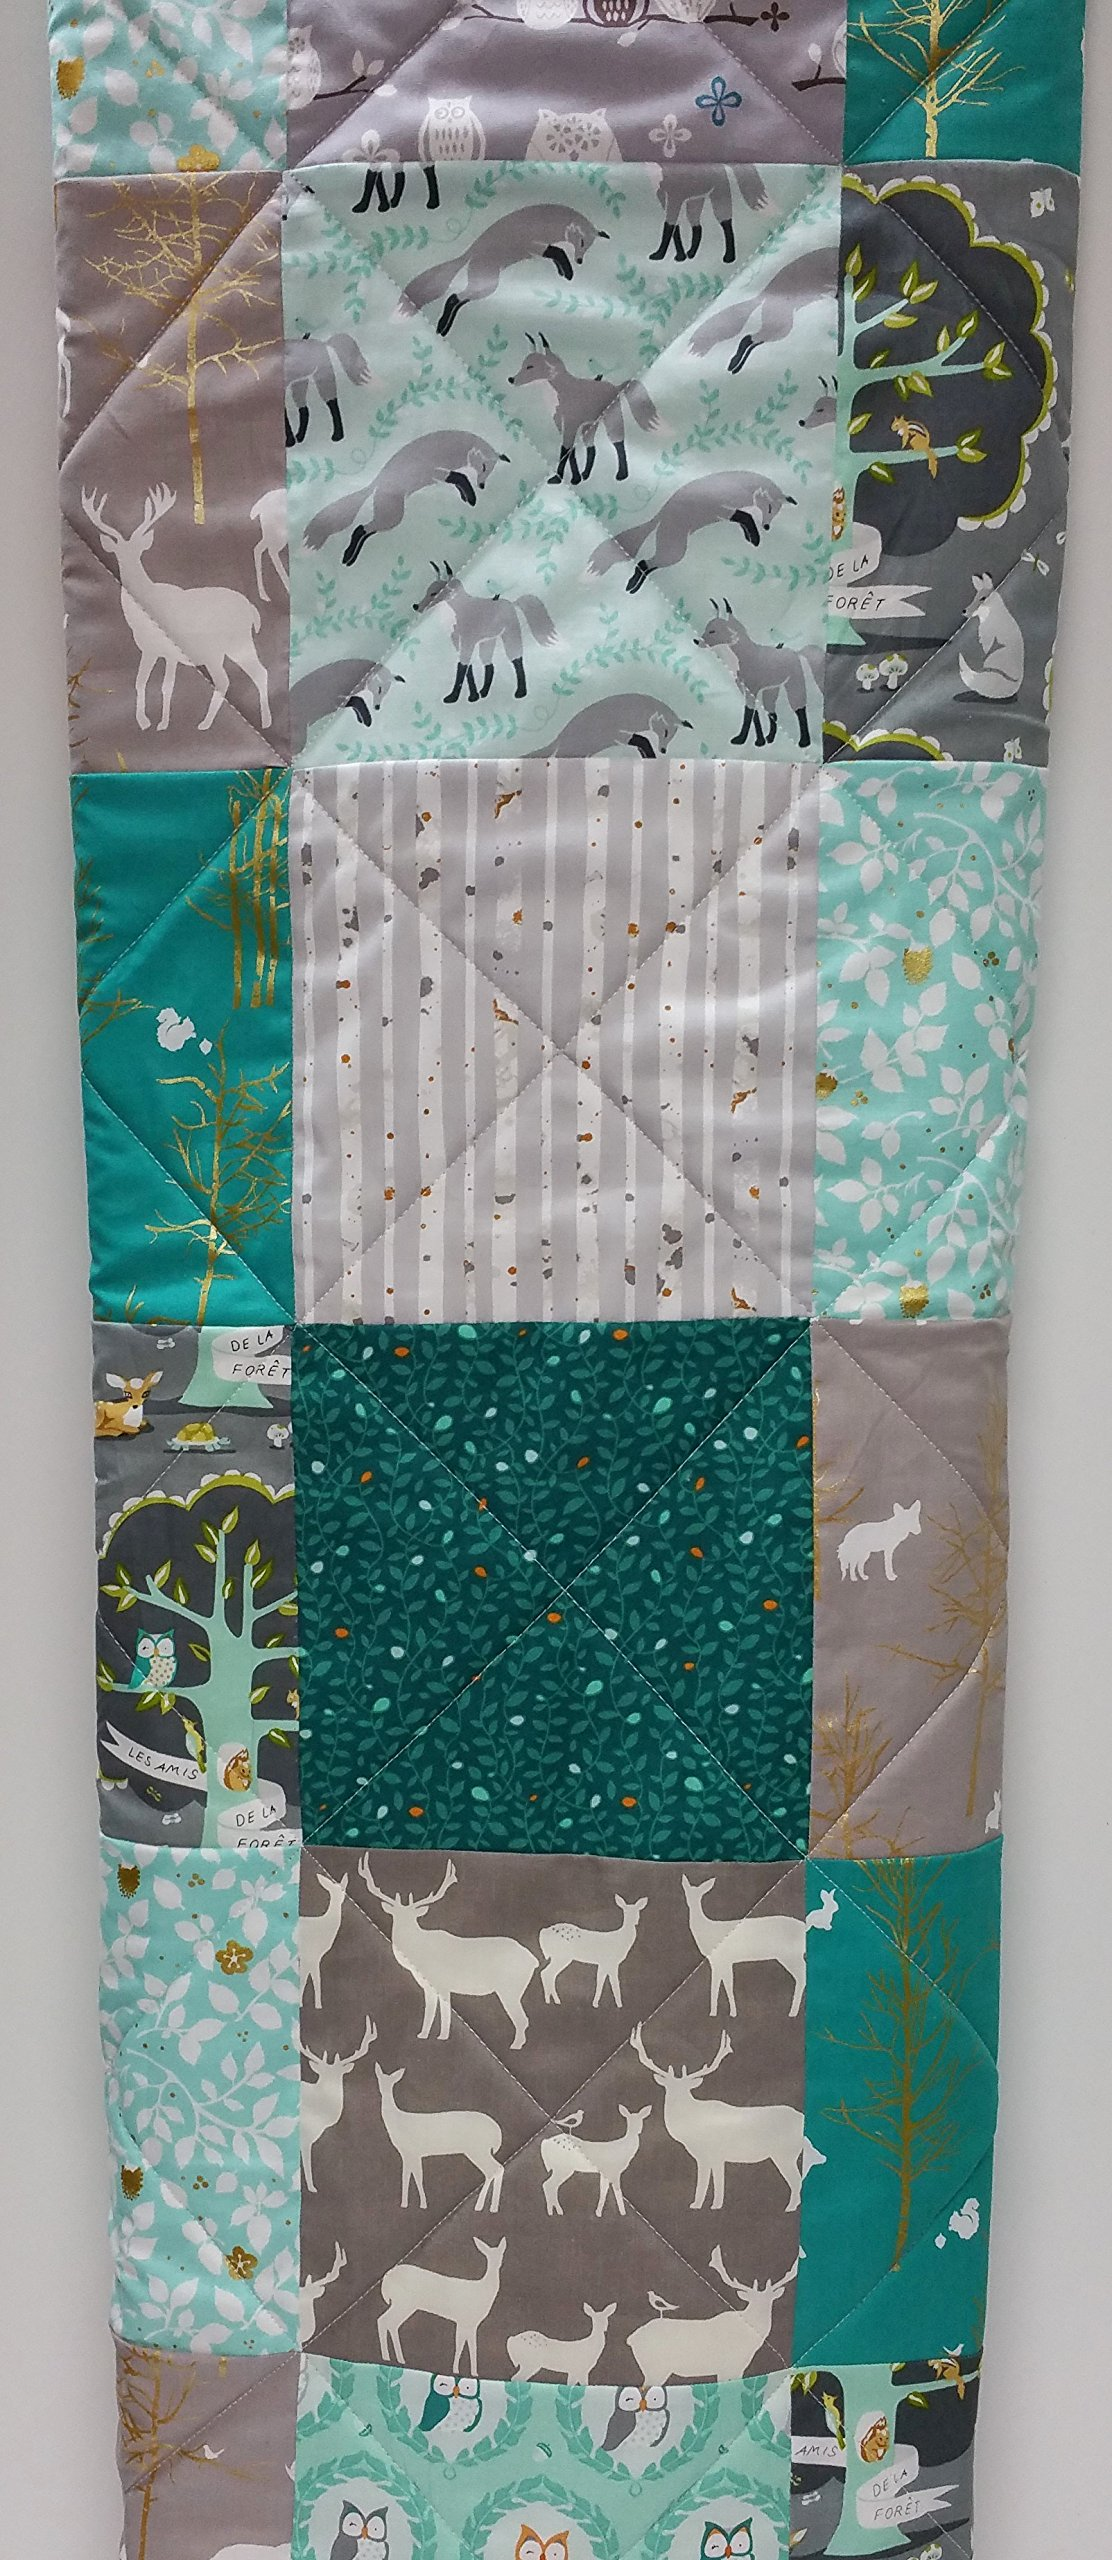 Teal, Aqua, and Gray Rustic Woodland Baby Quilt